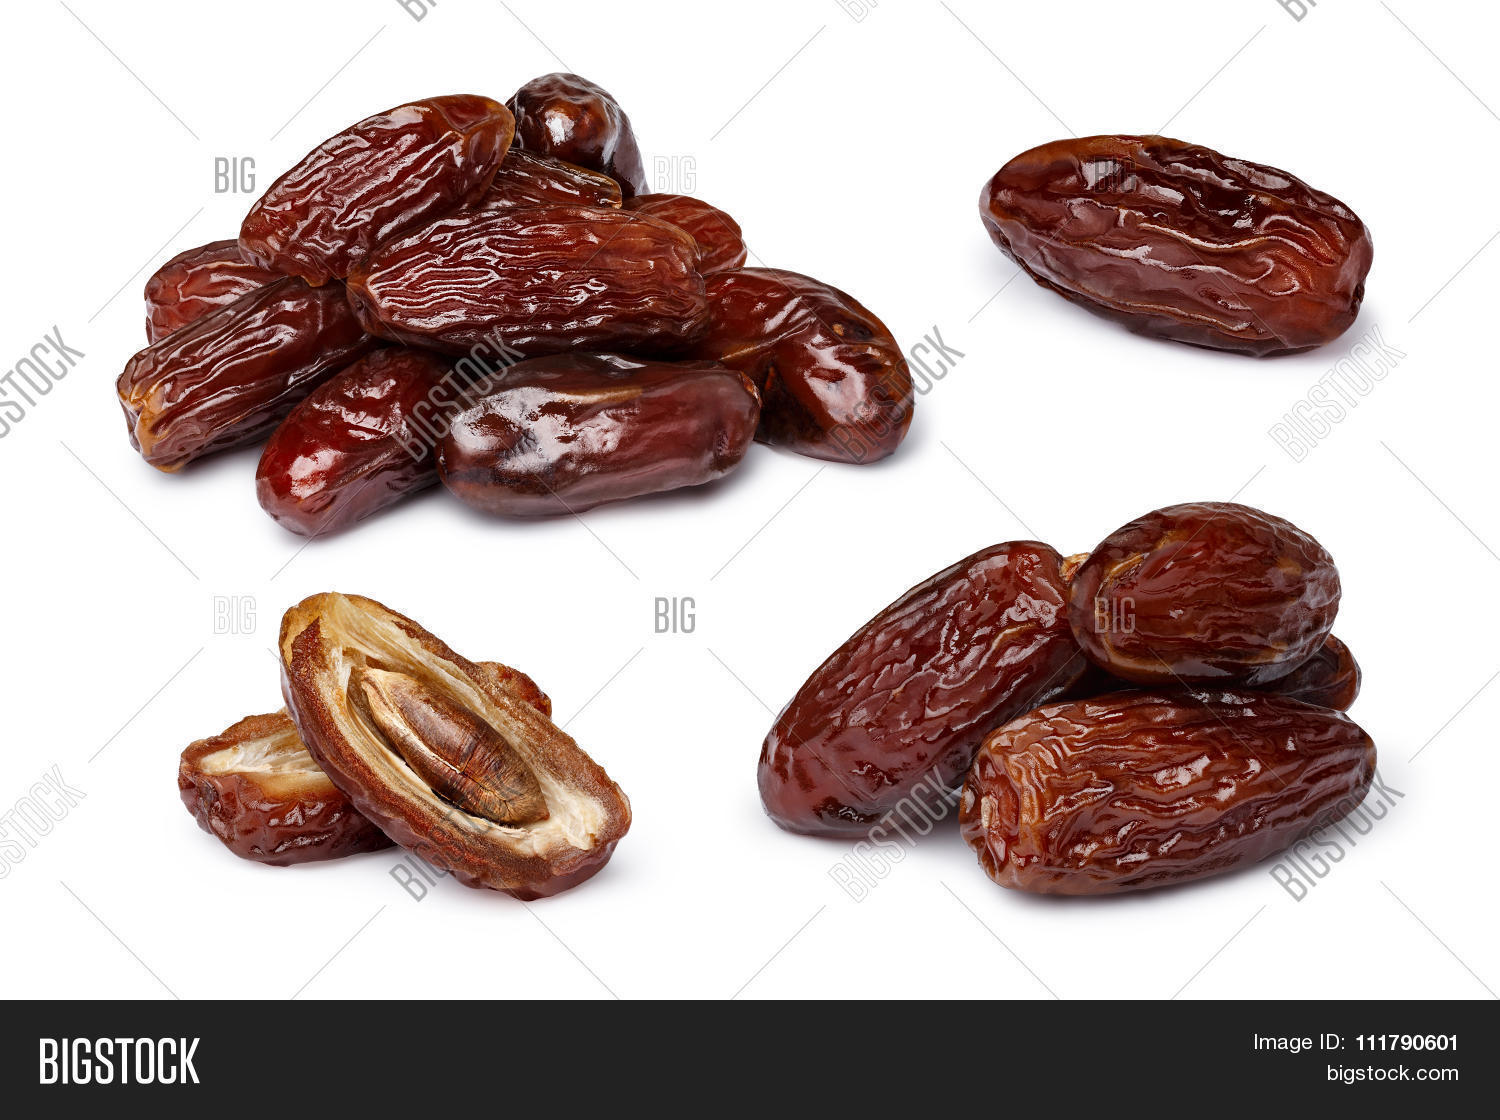 norsk knulling dates fruit